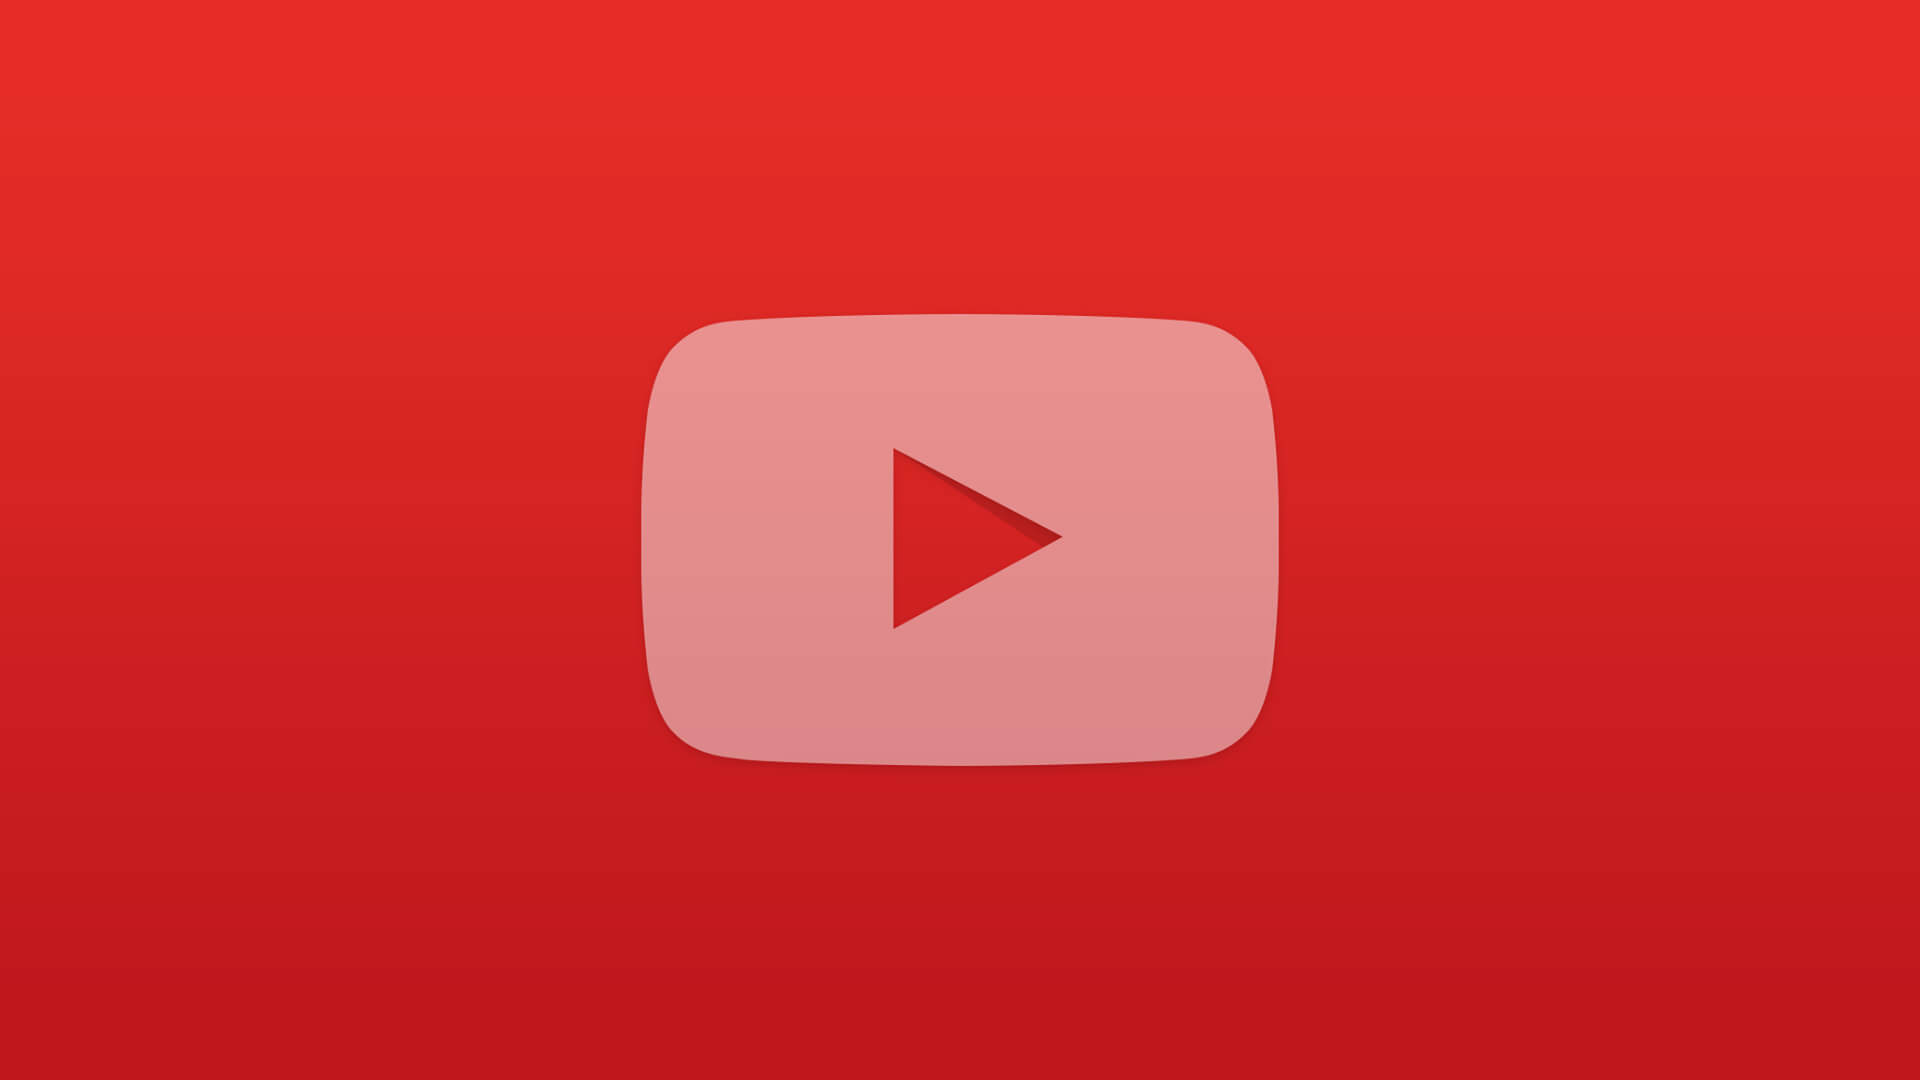 3d Animated Gif Wallpaper For Mobile How To Rank 1 On Youtube Search In 30 Days Case Study